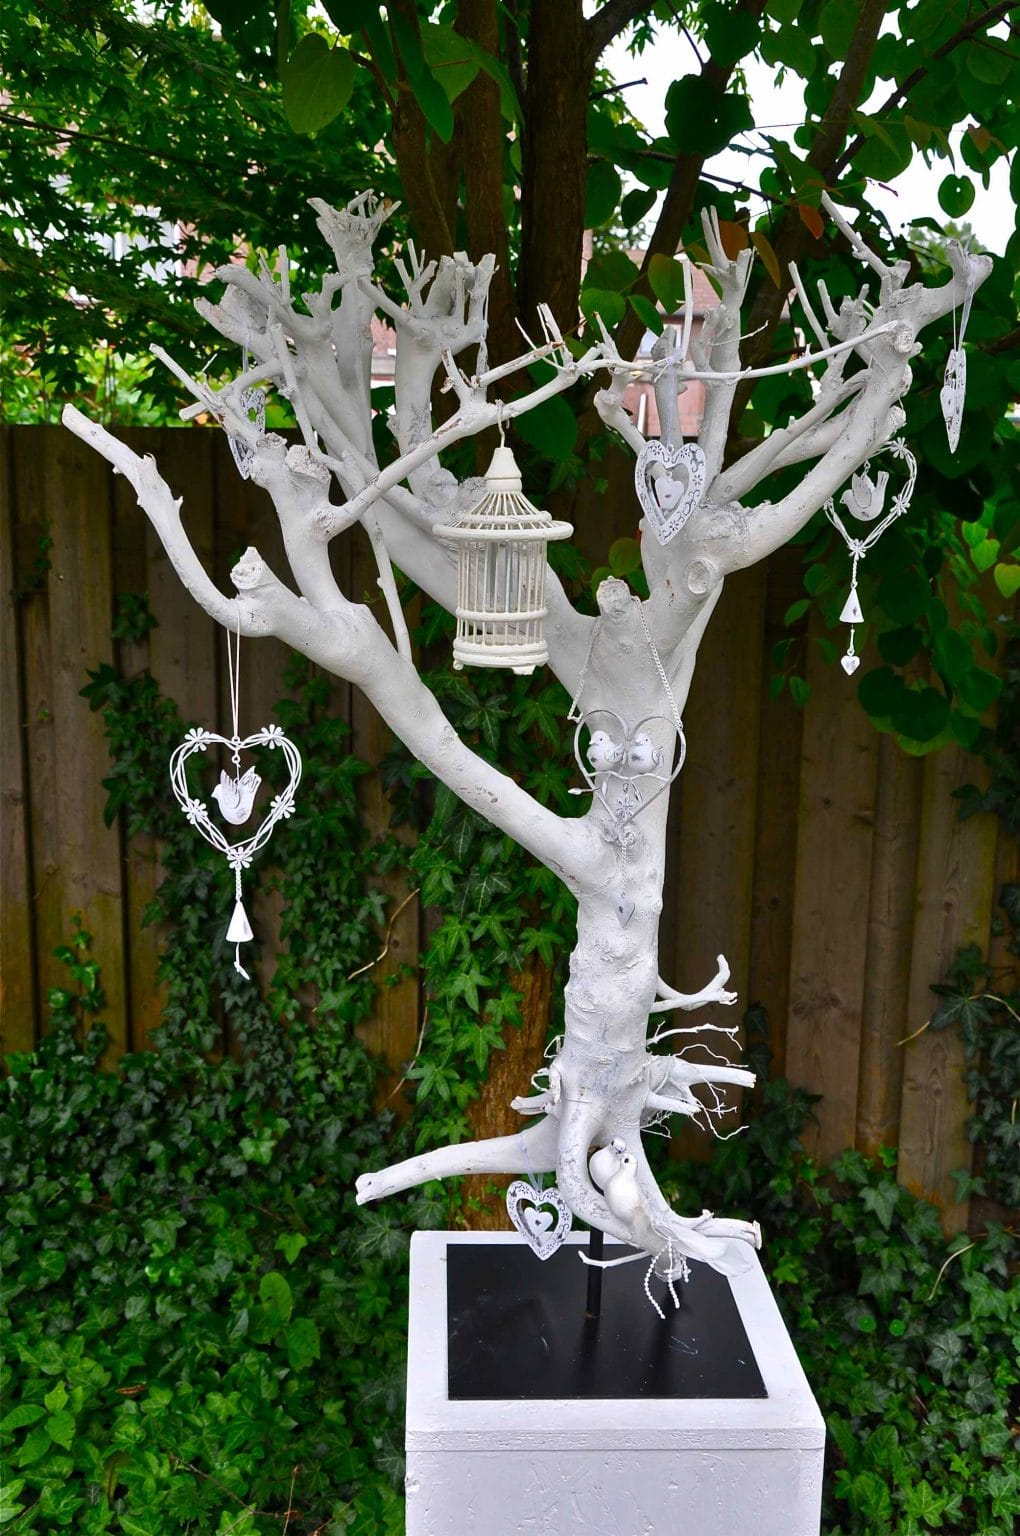 In Style Wish Tree